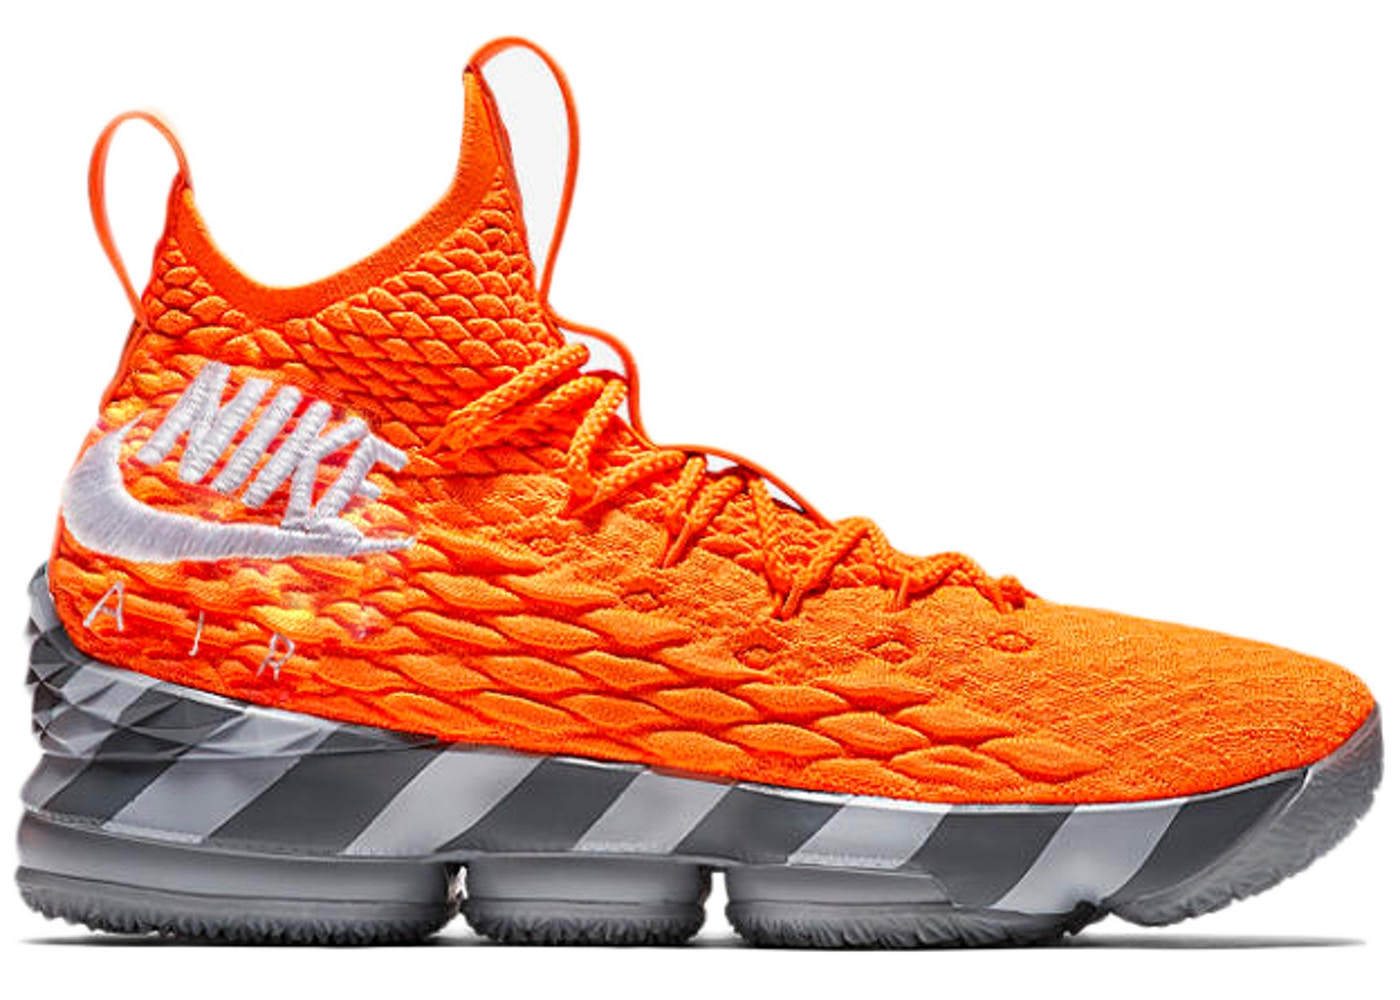 buy popular 0932e 1c2f7 LeBron 15 Orange Box - AR5125-800